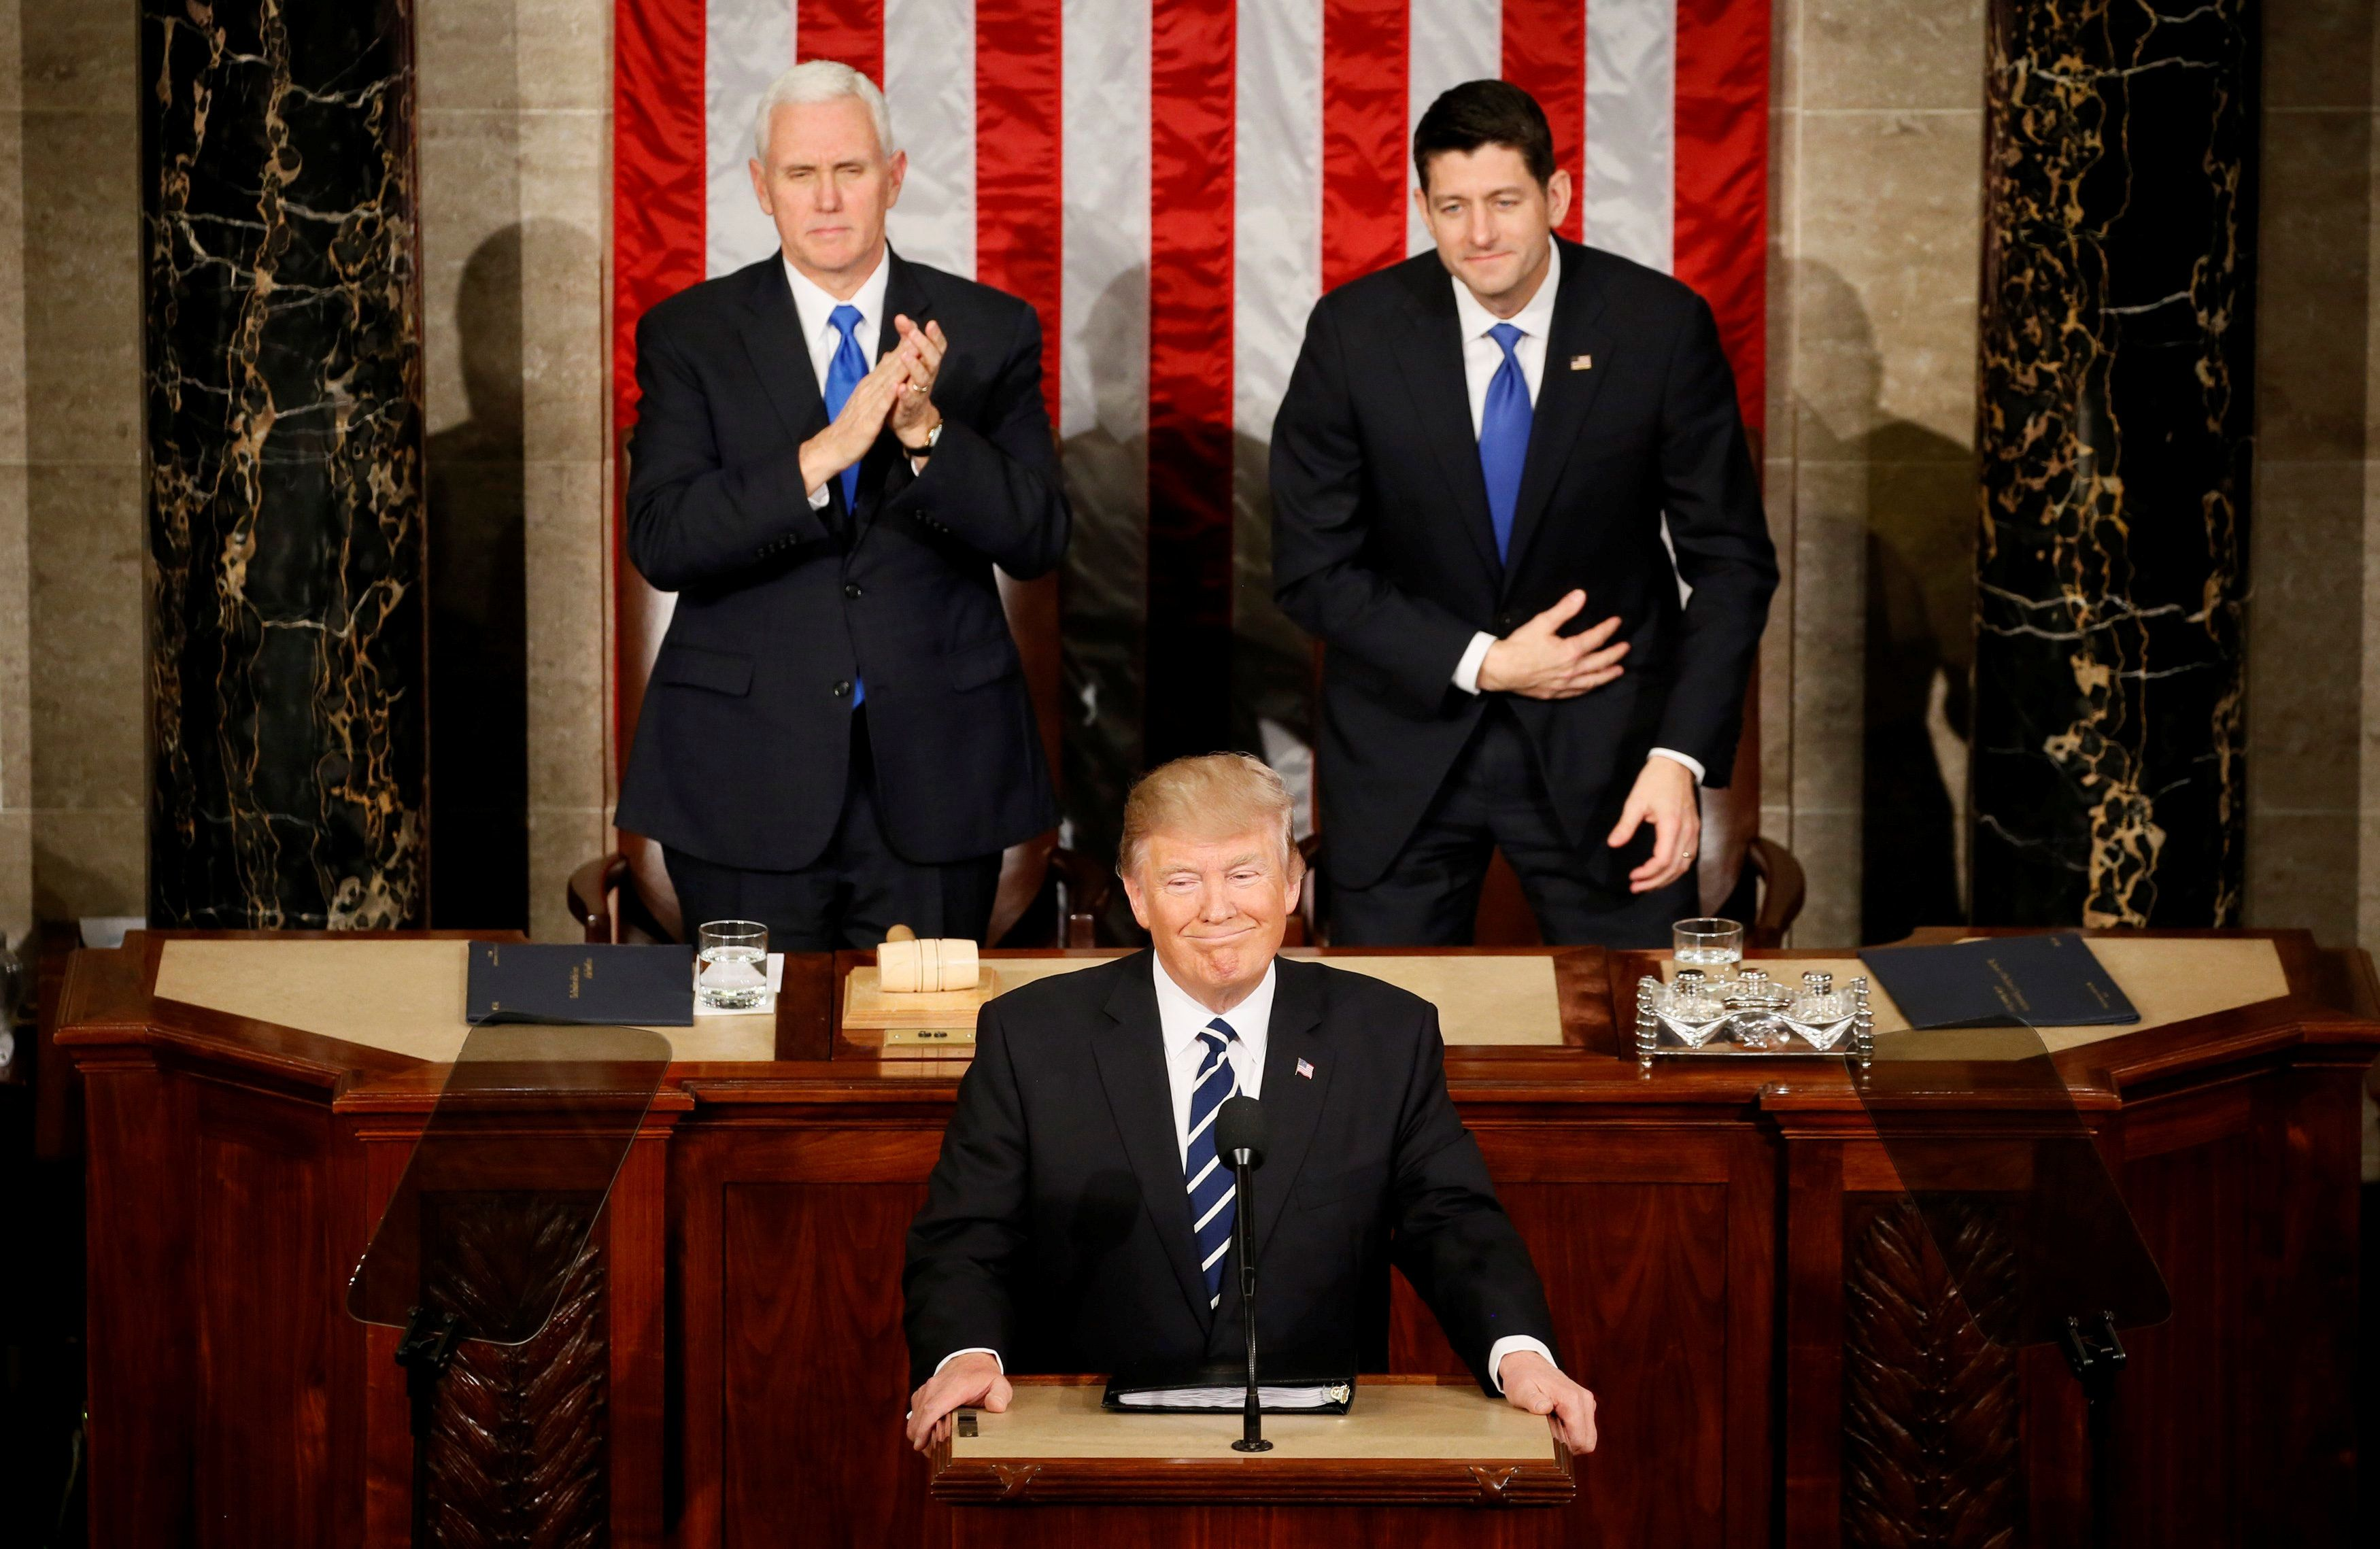 U.S. President Trump addresses Joint Session of Congress - Washington, U.S. - 28/02/17 - U.S. President Donald Trump pauses as he speaks in front of Vice President Mike Pence (L) and Speaker of the House Paul Ryan. REUTERS/Jim Bourg     TPX IMAGES OF THE DAY